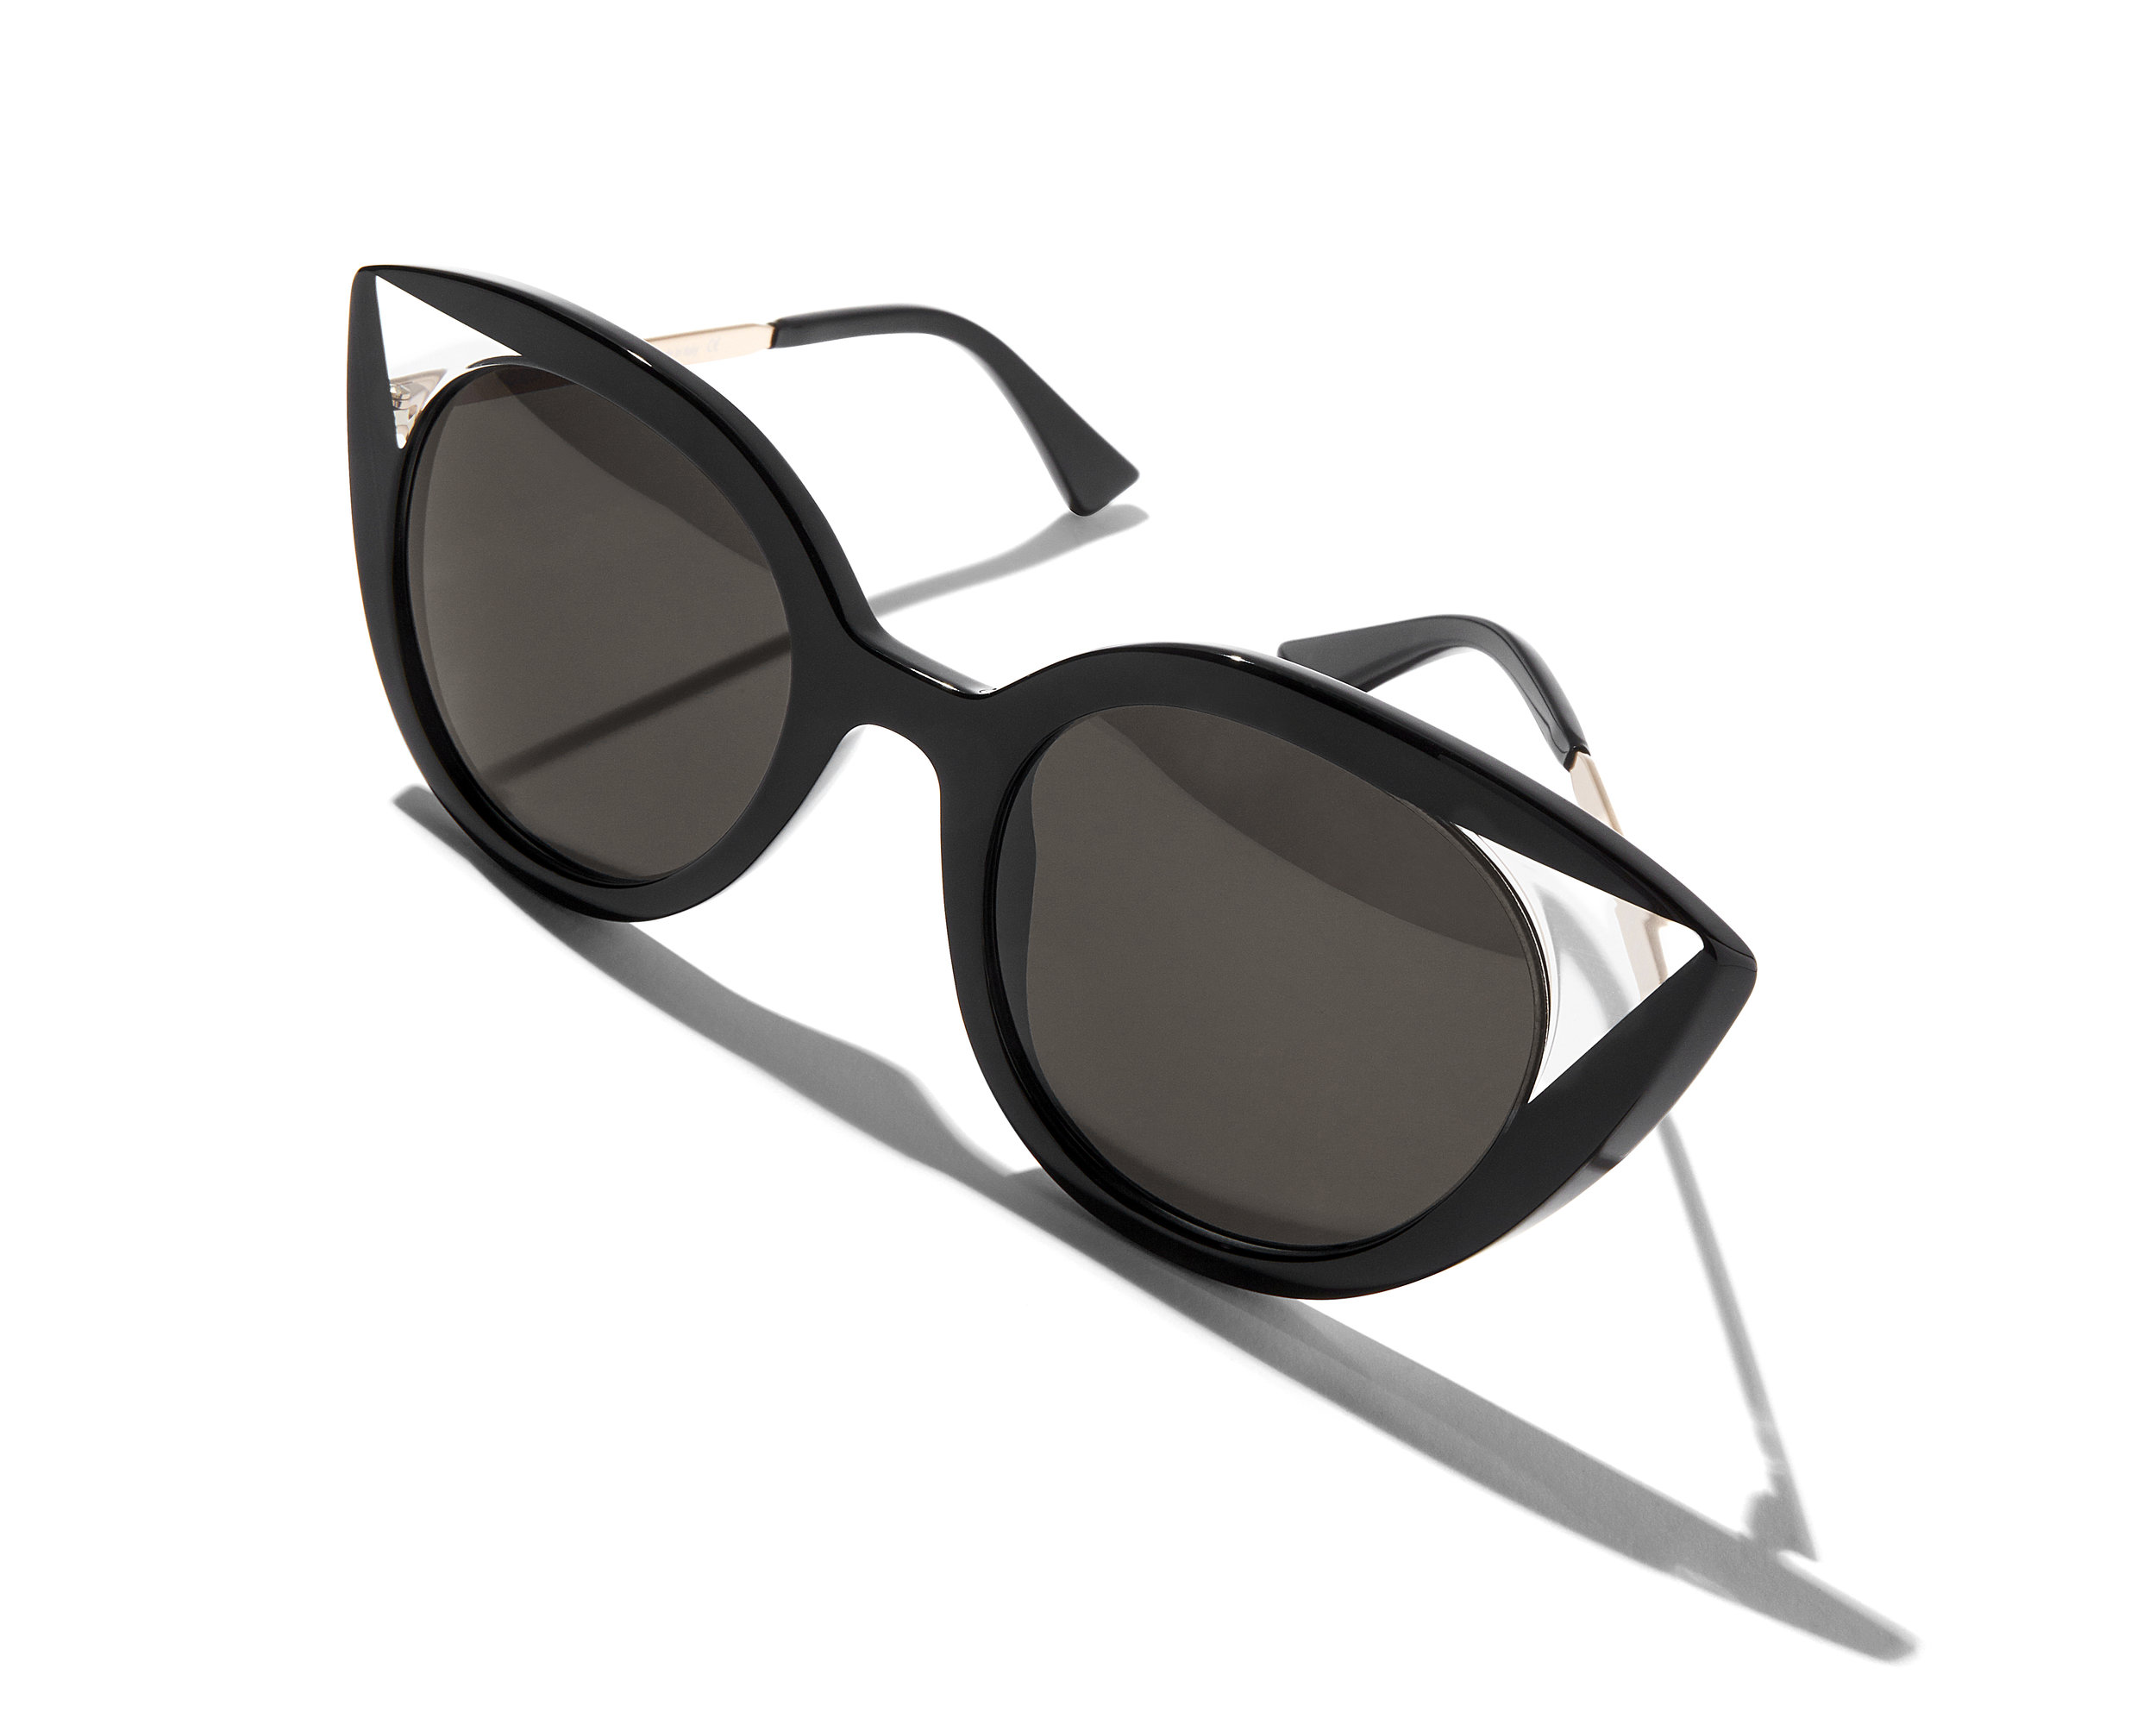 Sunglasses. - Andrew & Rogers stock a fabulous range of sunglasses from Ray-Ban, Oakley, Prada, Maui Jim, Adidas, Polo Ralph Lauren, and more. You are sure to find your perfect look summer here with us, click here to view our full range of brands. All of our sunglasses offer full UV protection.